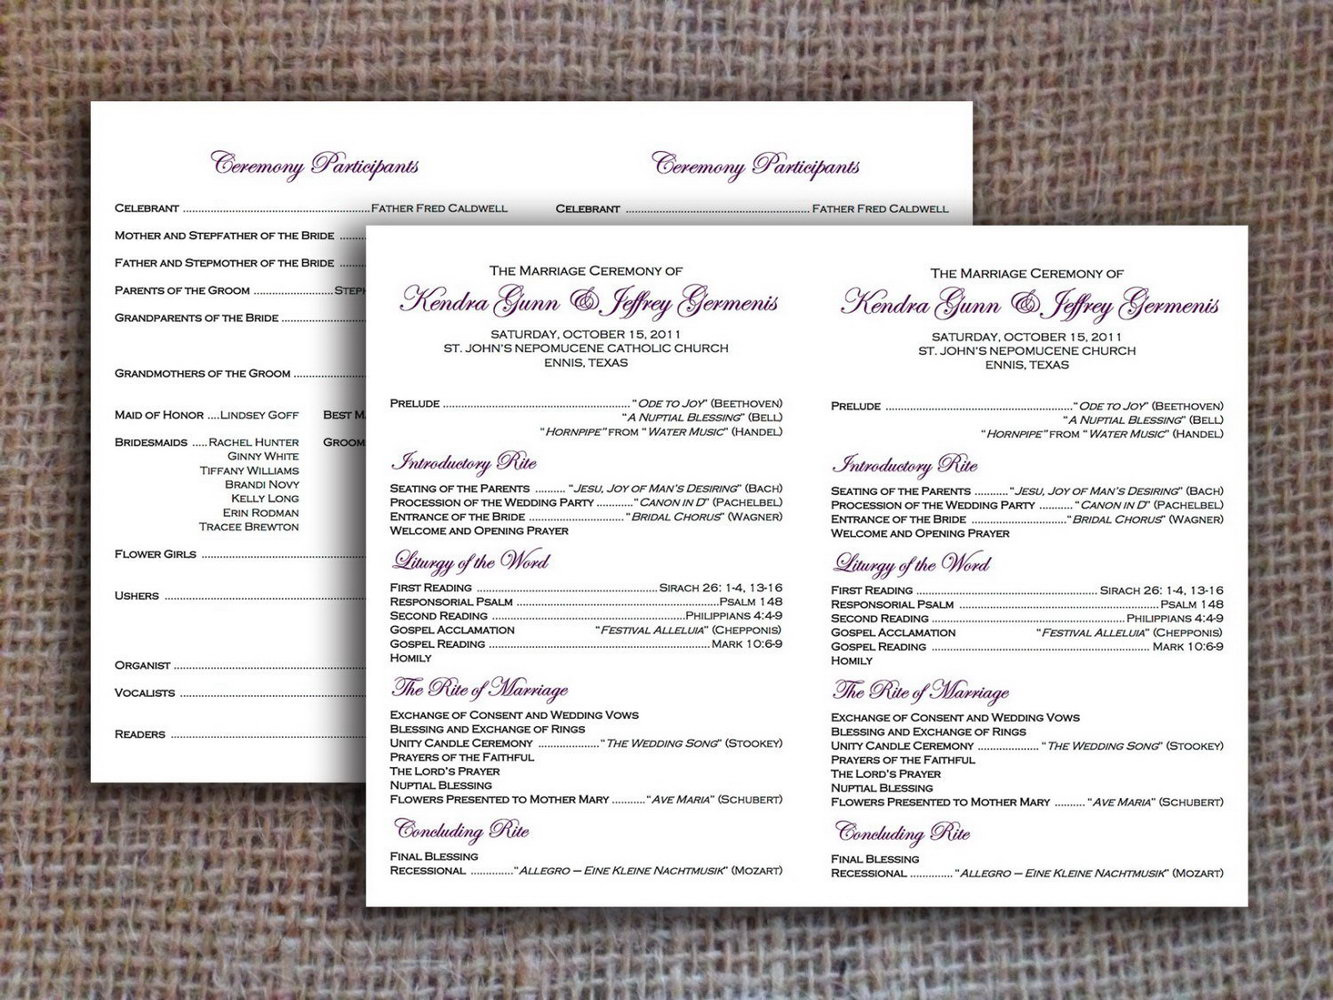 Catholic Wedding Ceremony Without Mass Program Templates